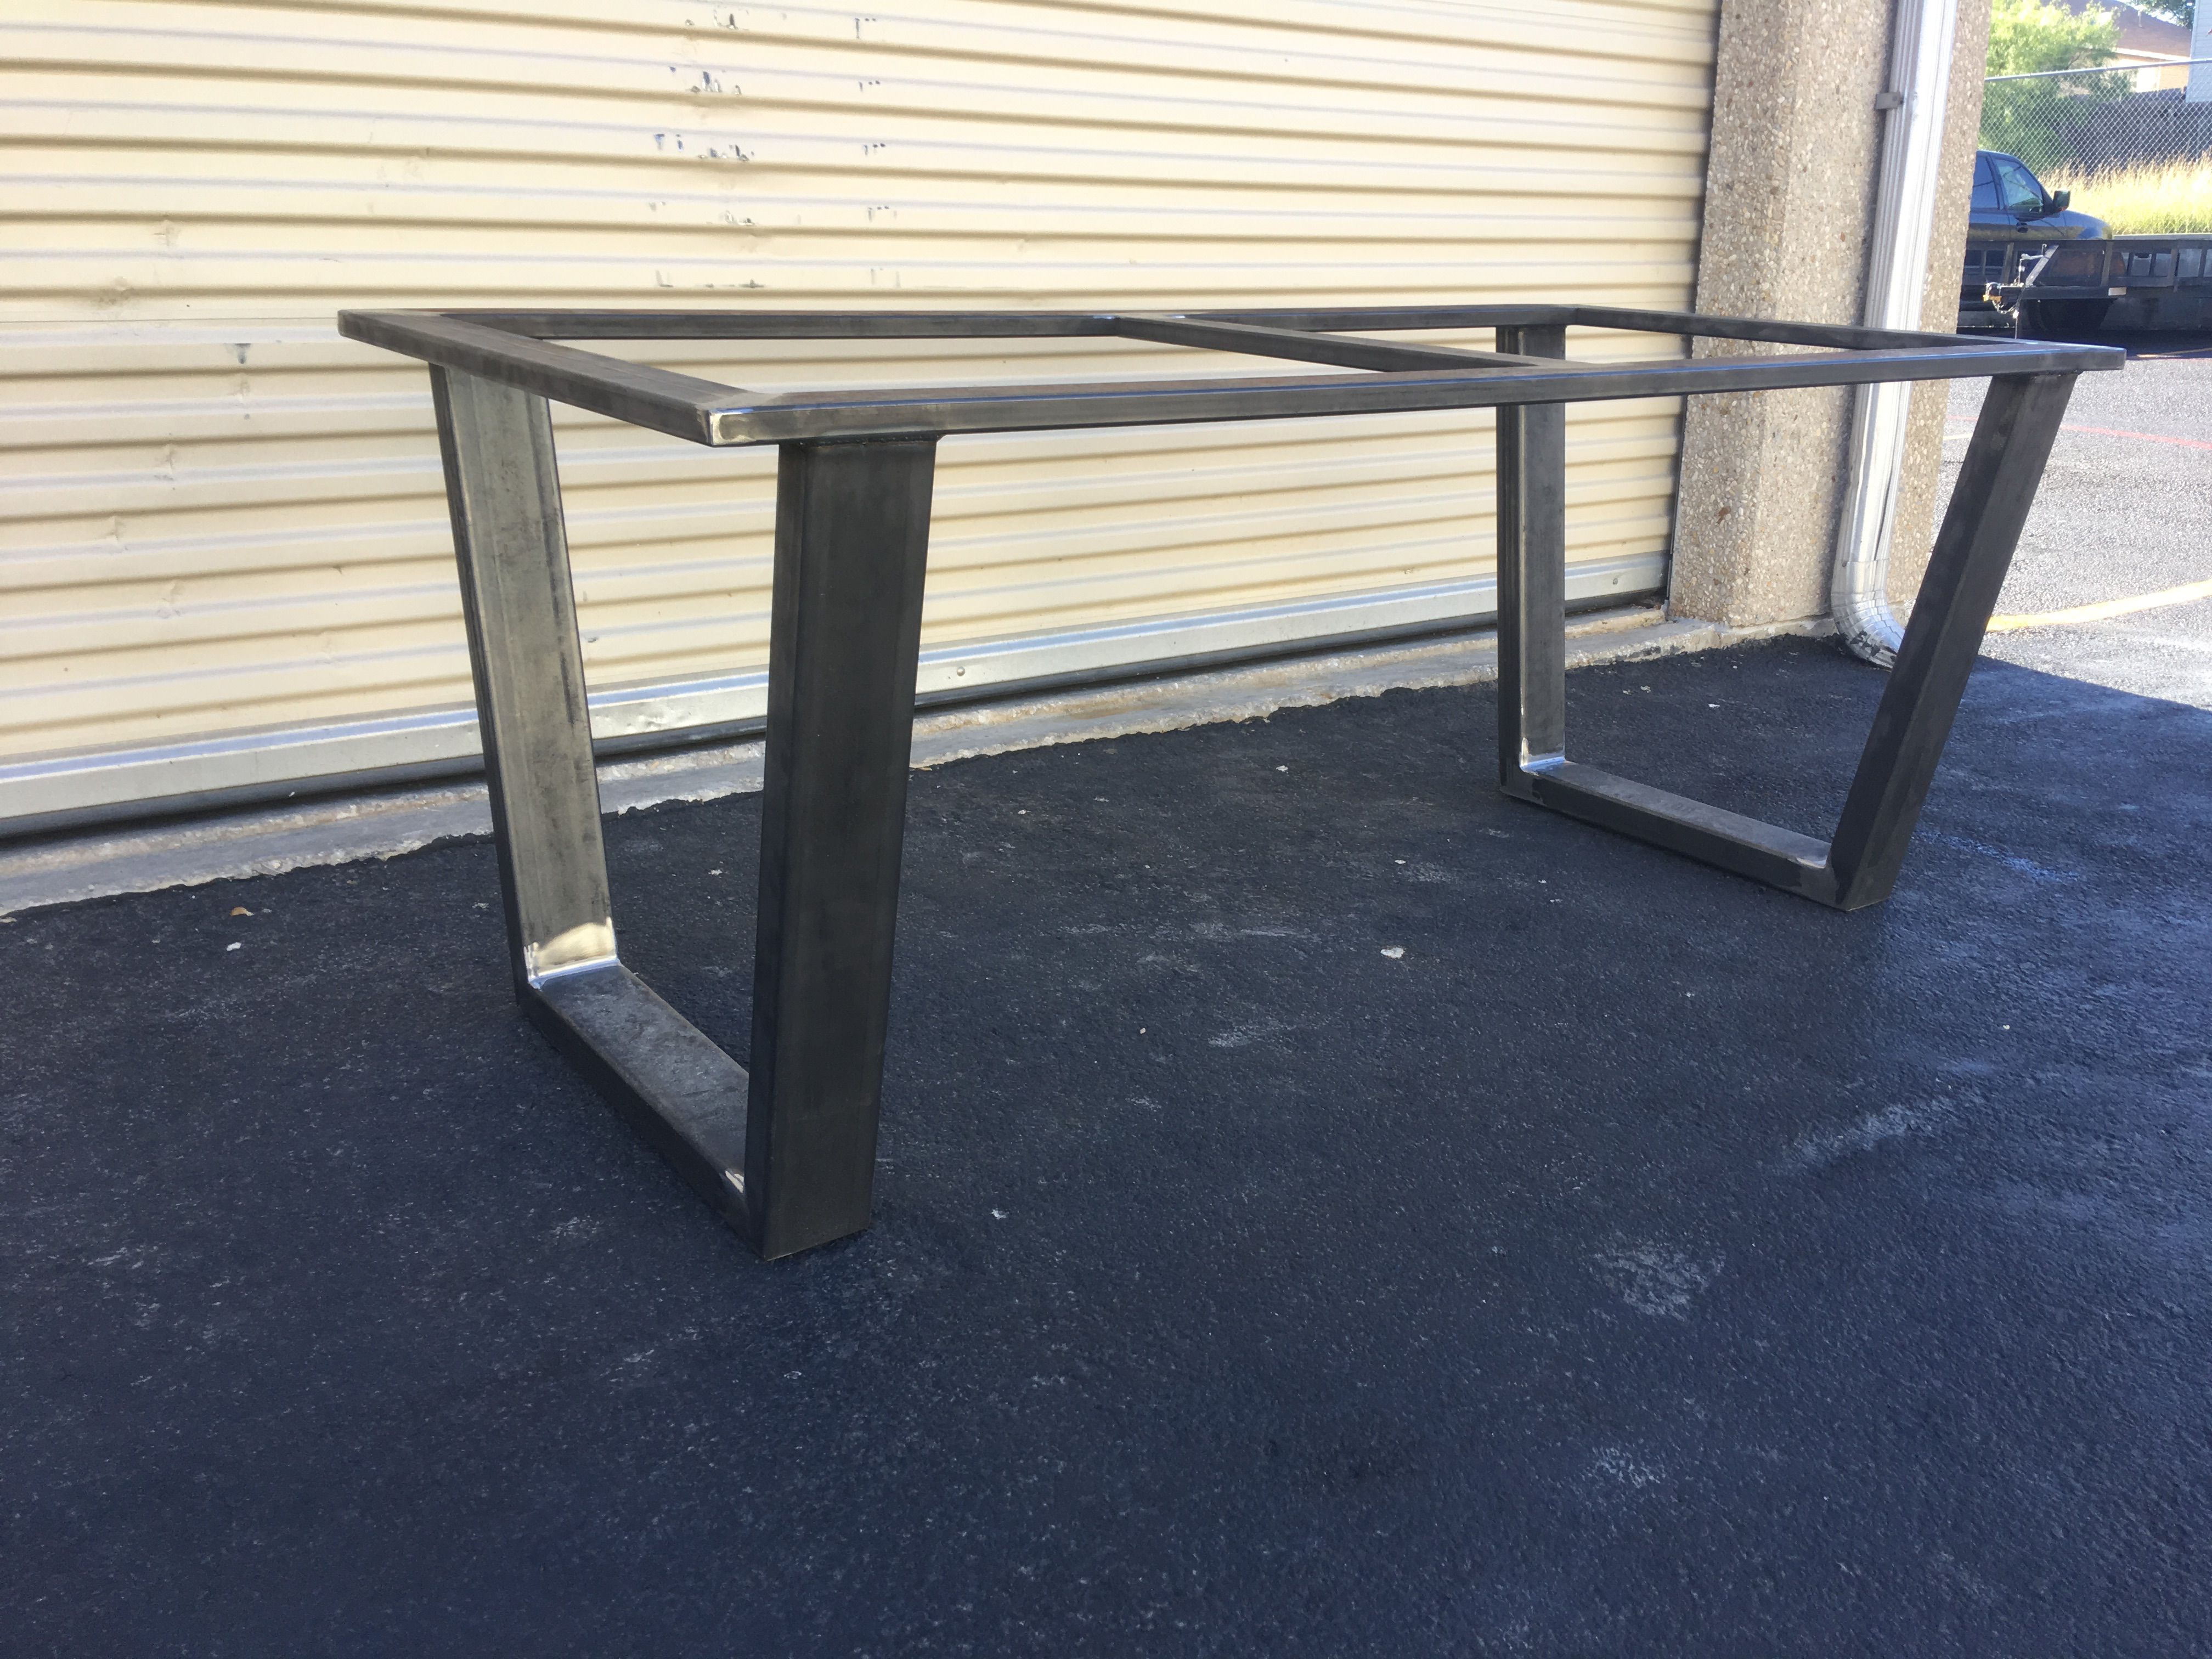 Surprising Buy A Custom Steel Table Base Made To Order From Steel Download Free Architecture Designs Rallybritishbridgeorg